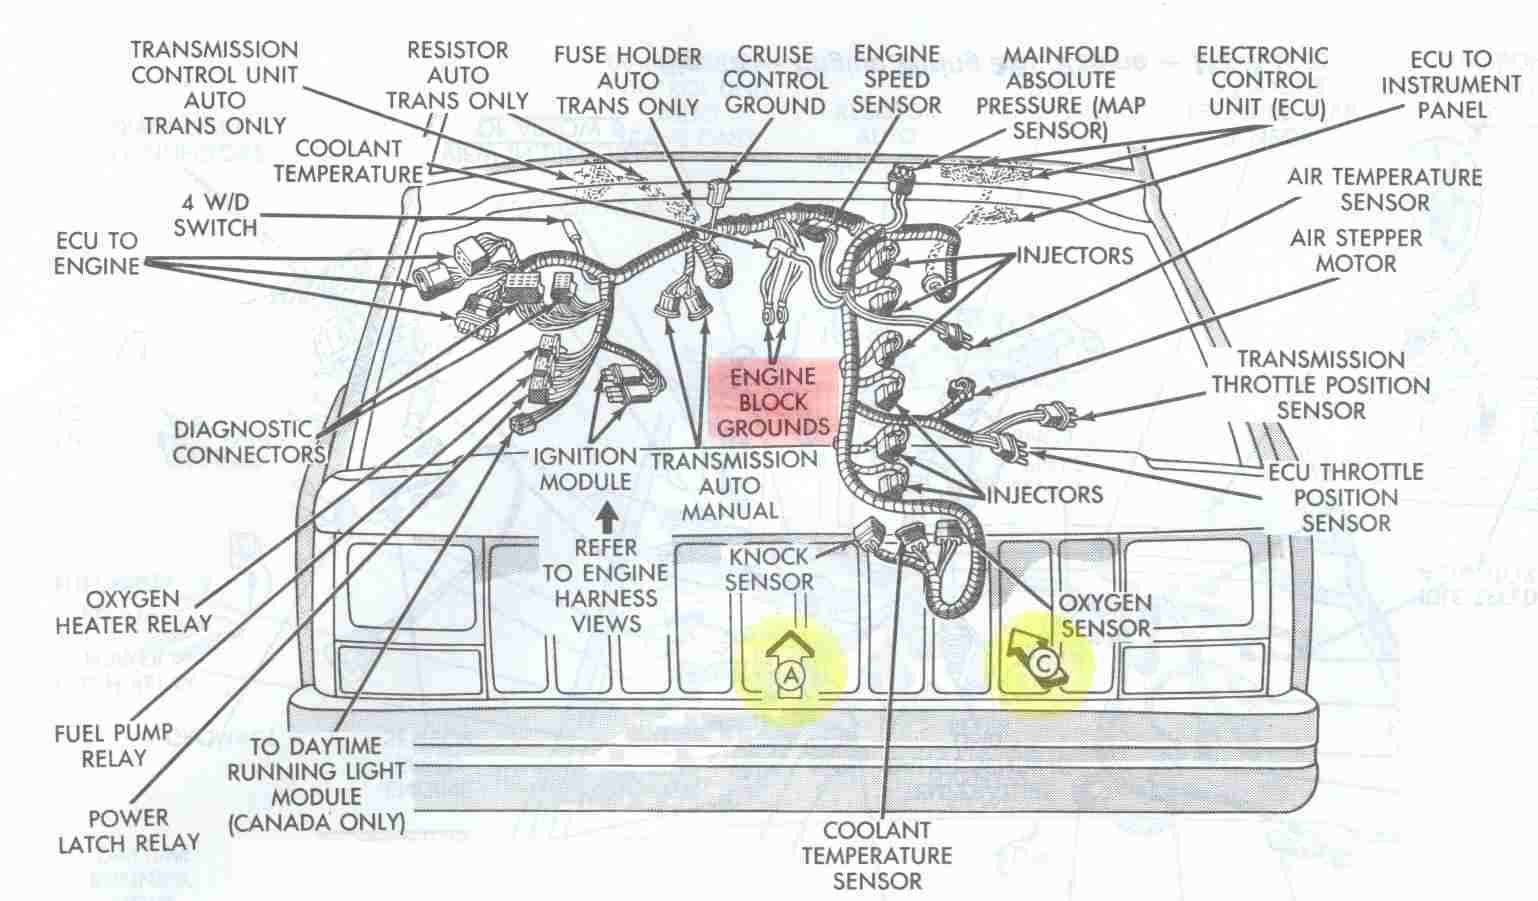 ab0134a7d9e021431187af597eb4aeca engine bay schematic showing major electrical ground points for 1999 jeep cherokee wiring schematic at readyjetset.co